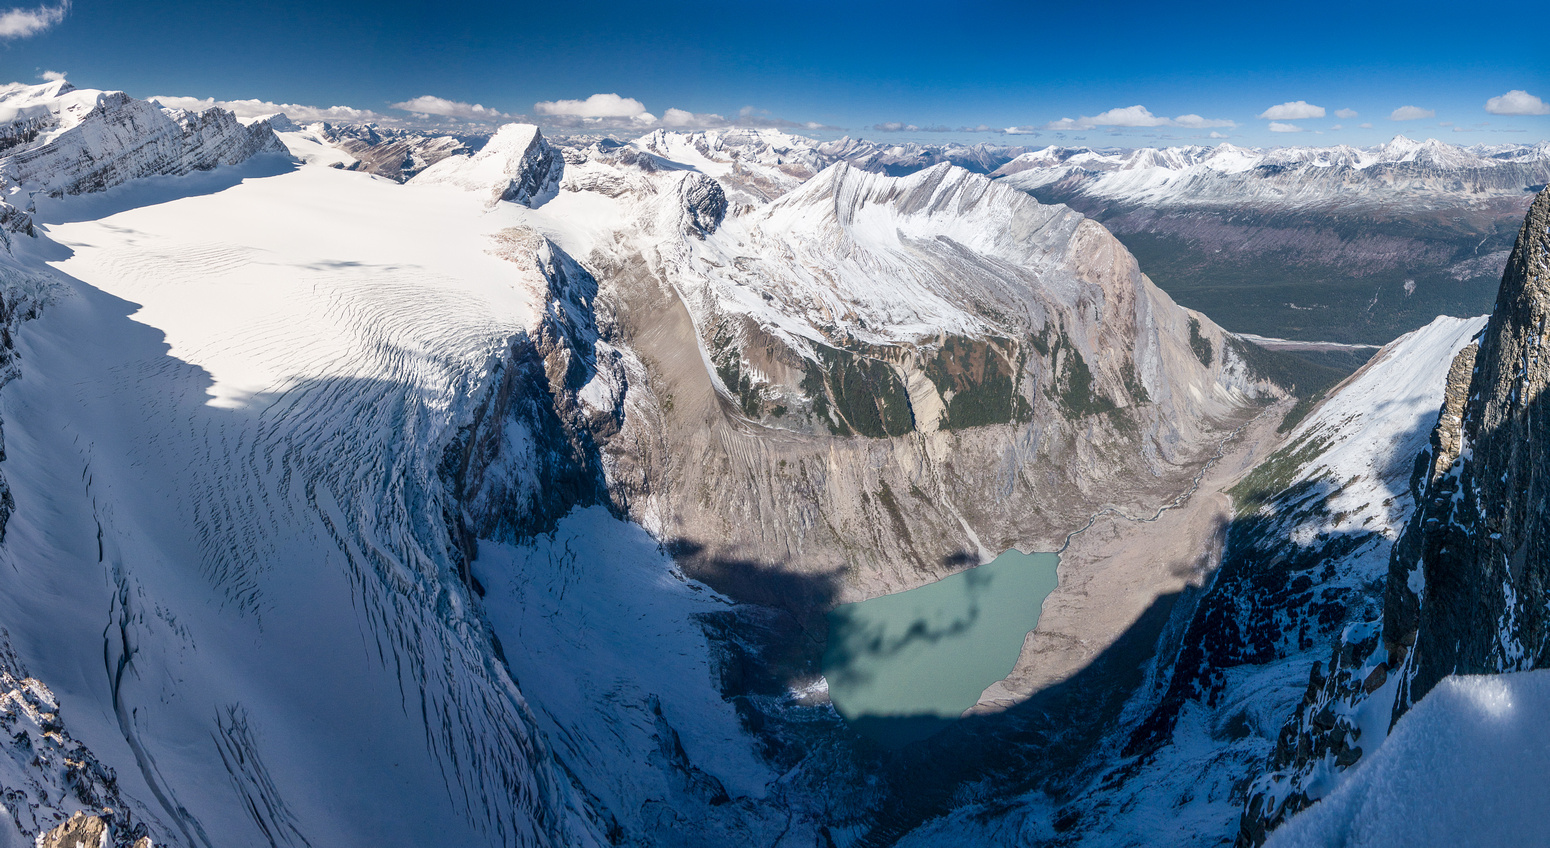 Another view of the impressive icefall from the Mural Glacier.